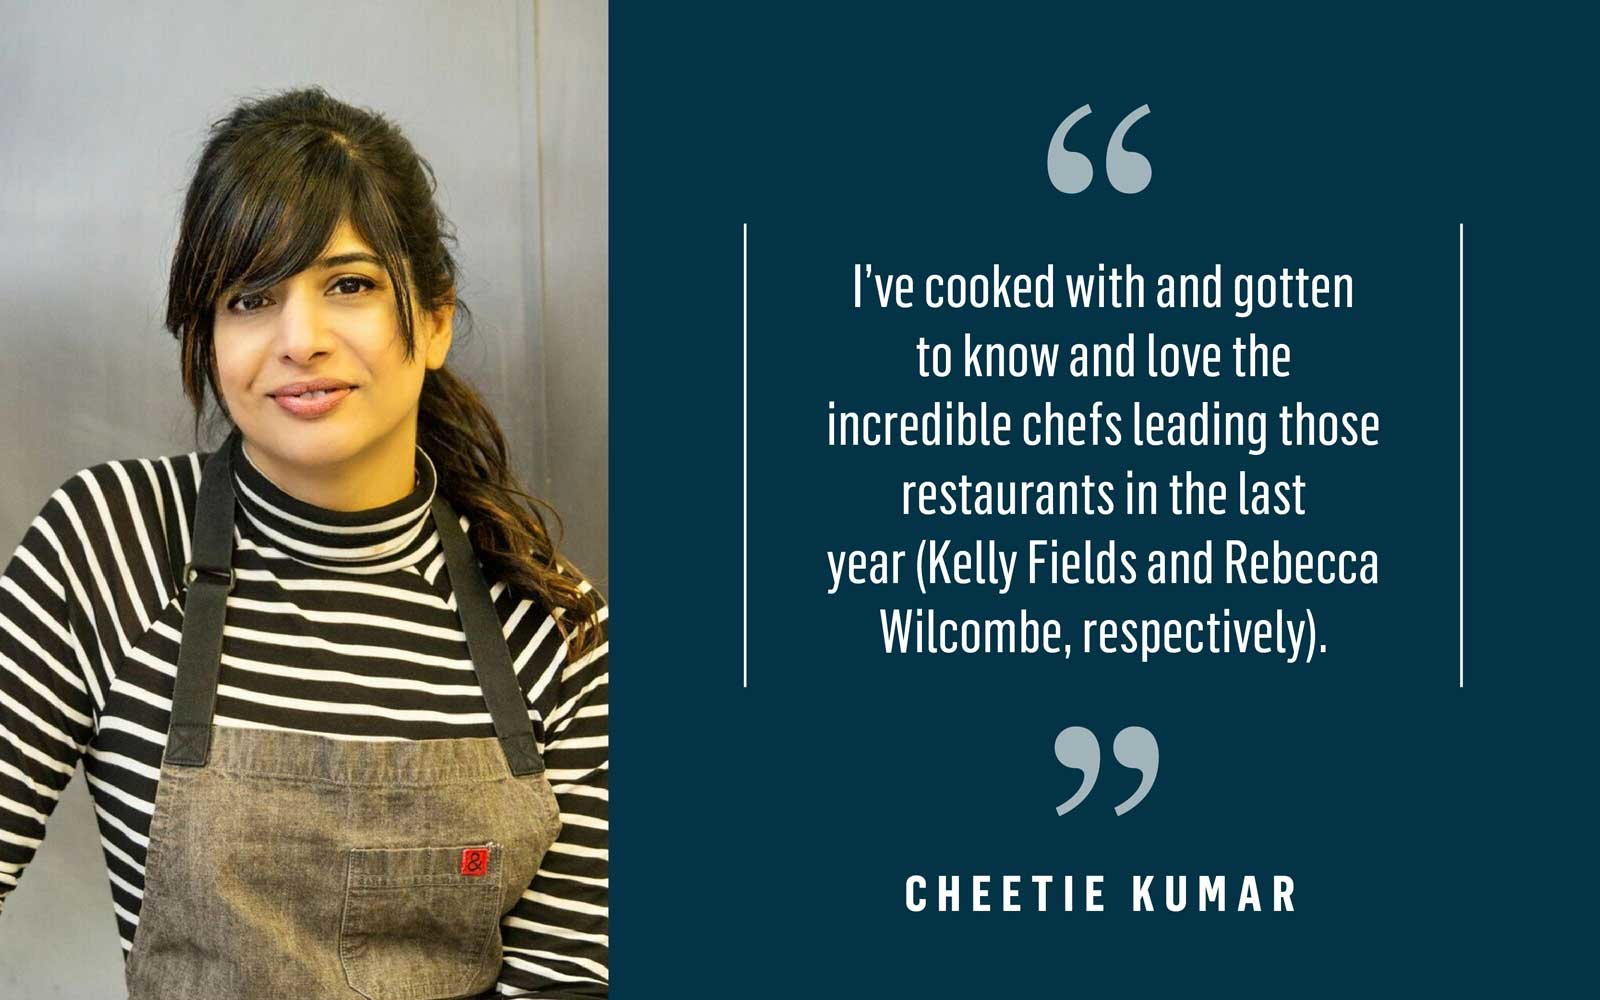 Chef Cheetie Kumar